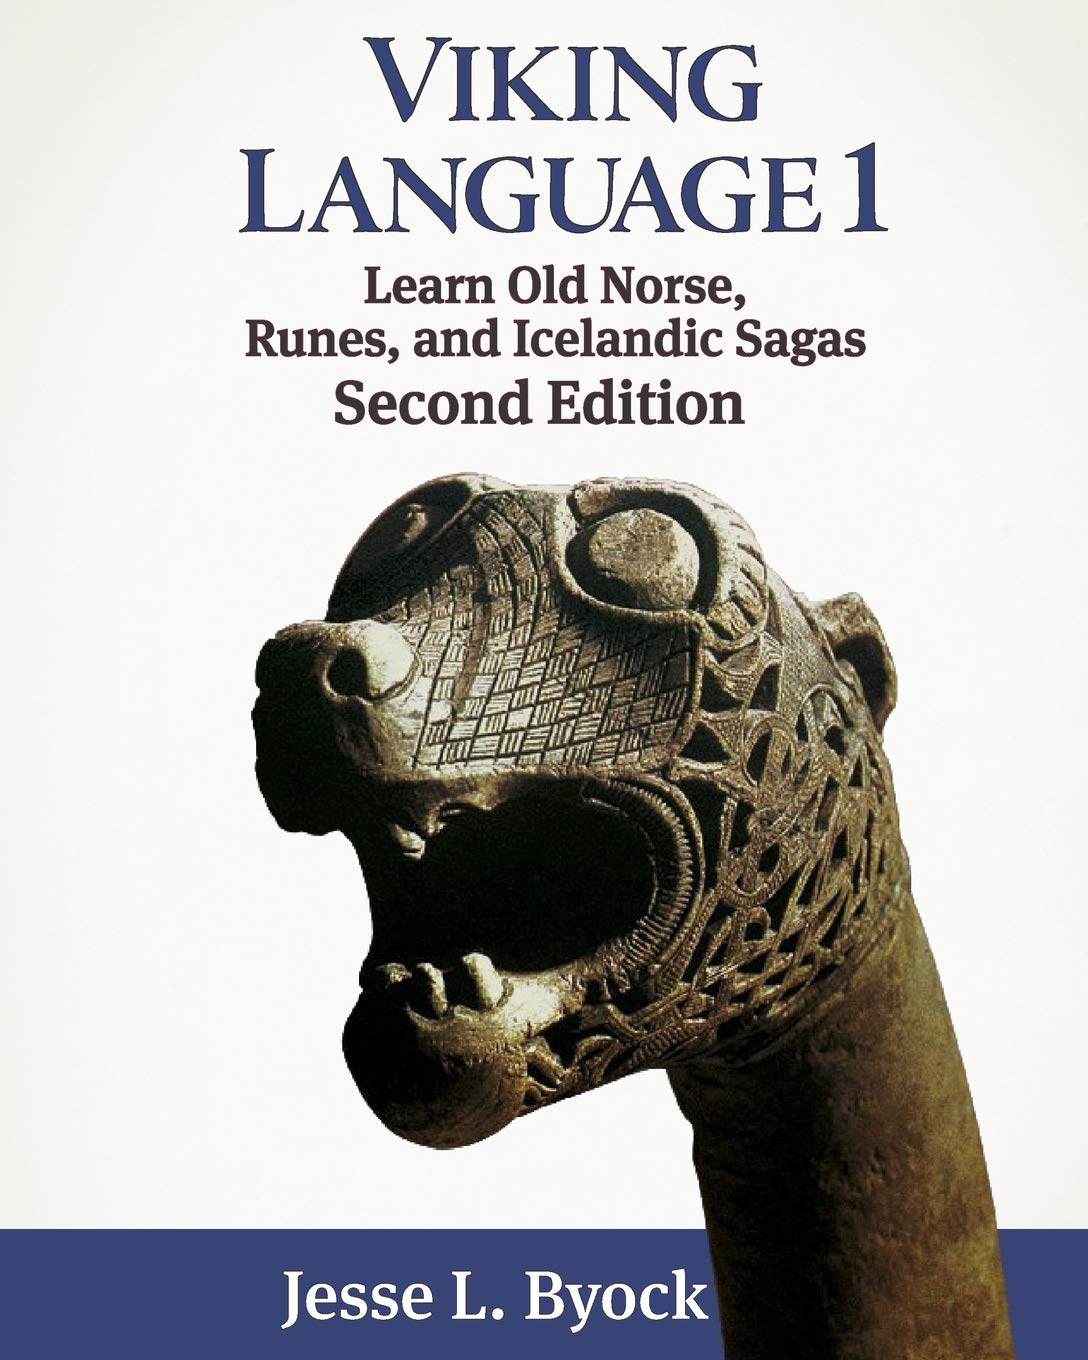 Viking Language 1: Learn Old Norse, Runes, and Icelandic Sagas (Viking Language Series) by Brand: CreateSpace Independent Publishing Platform